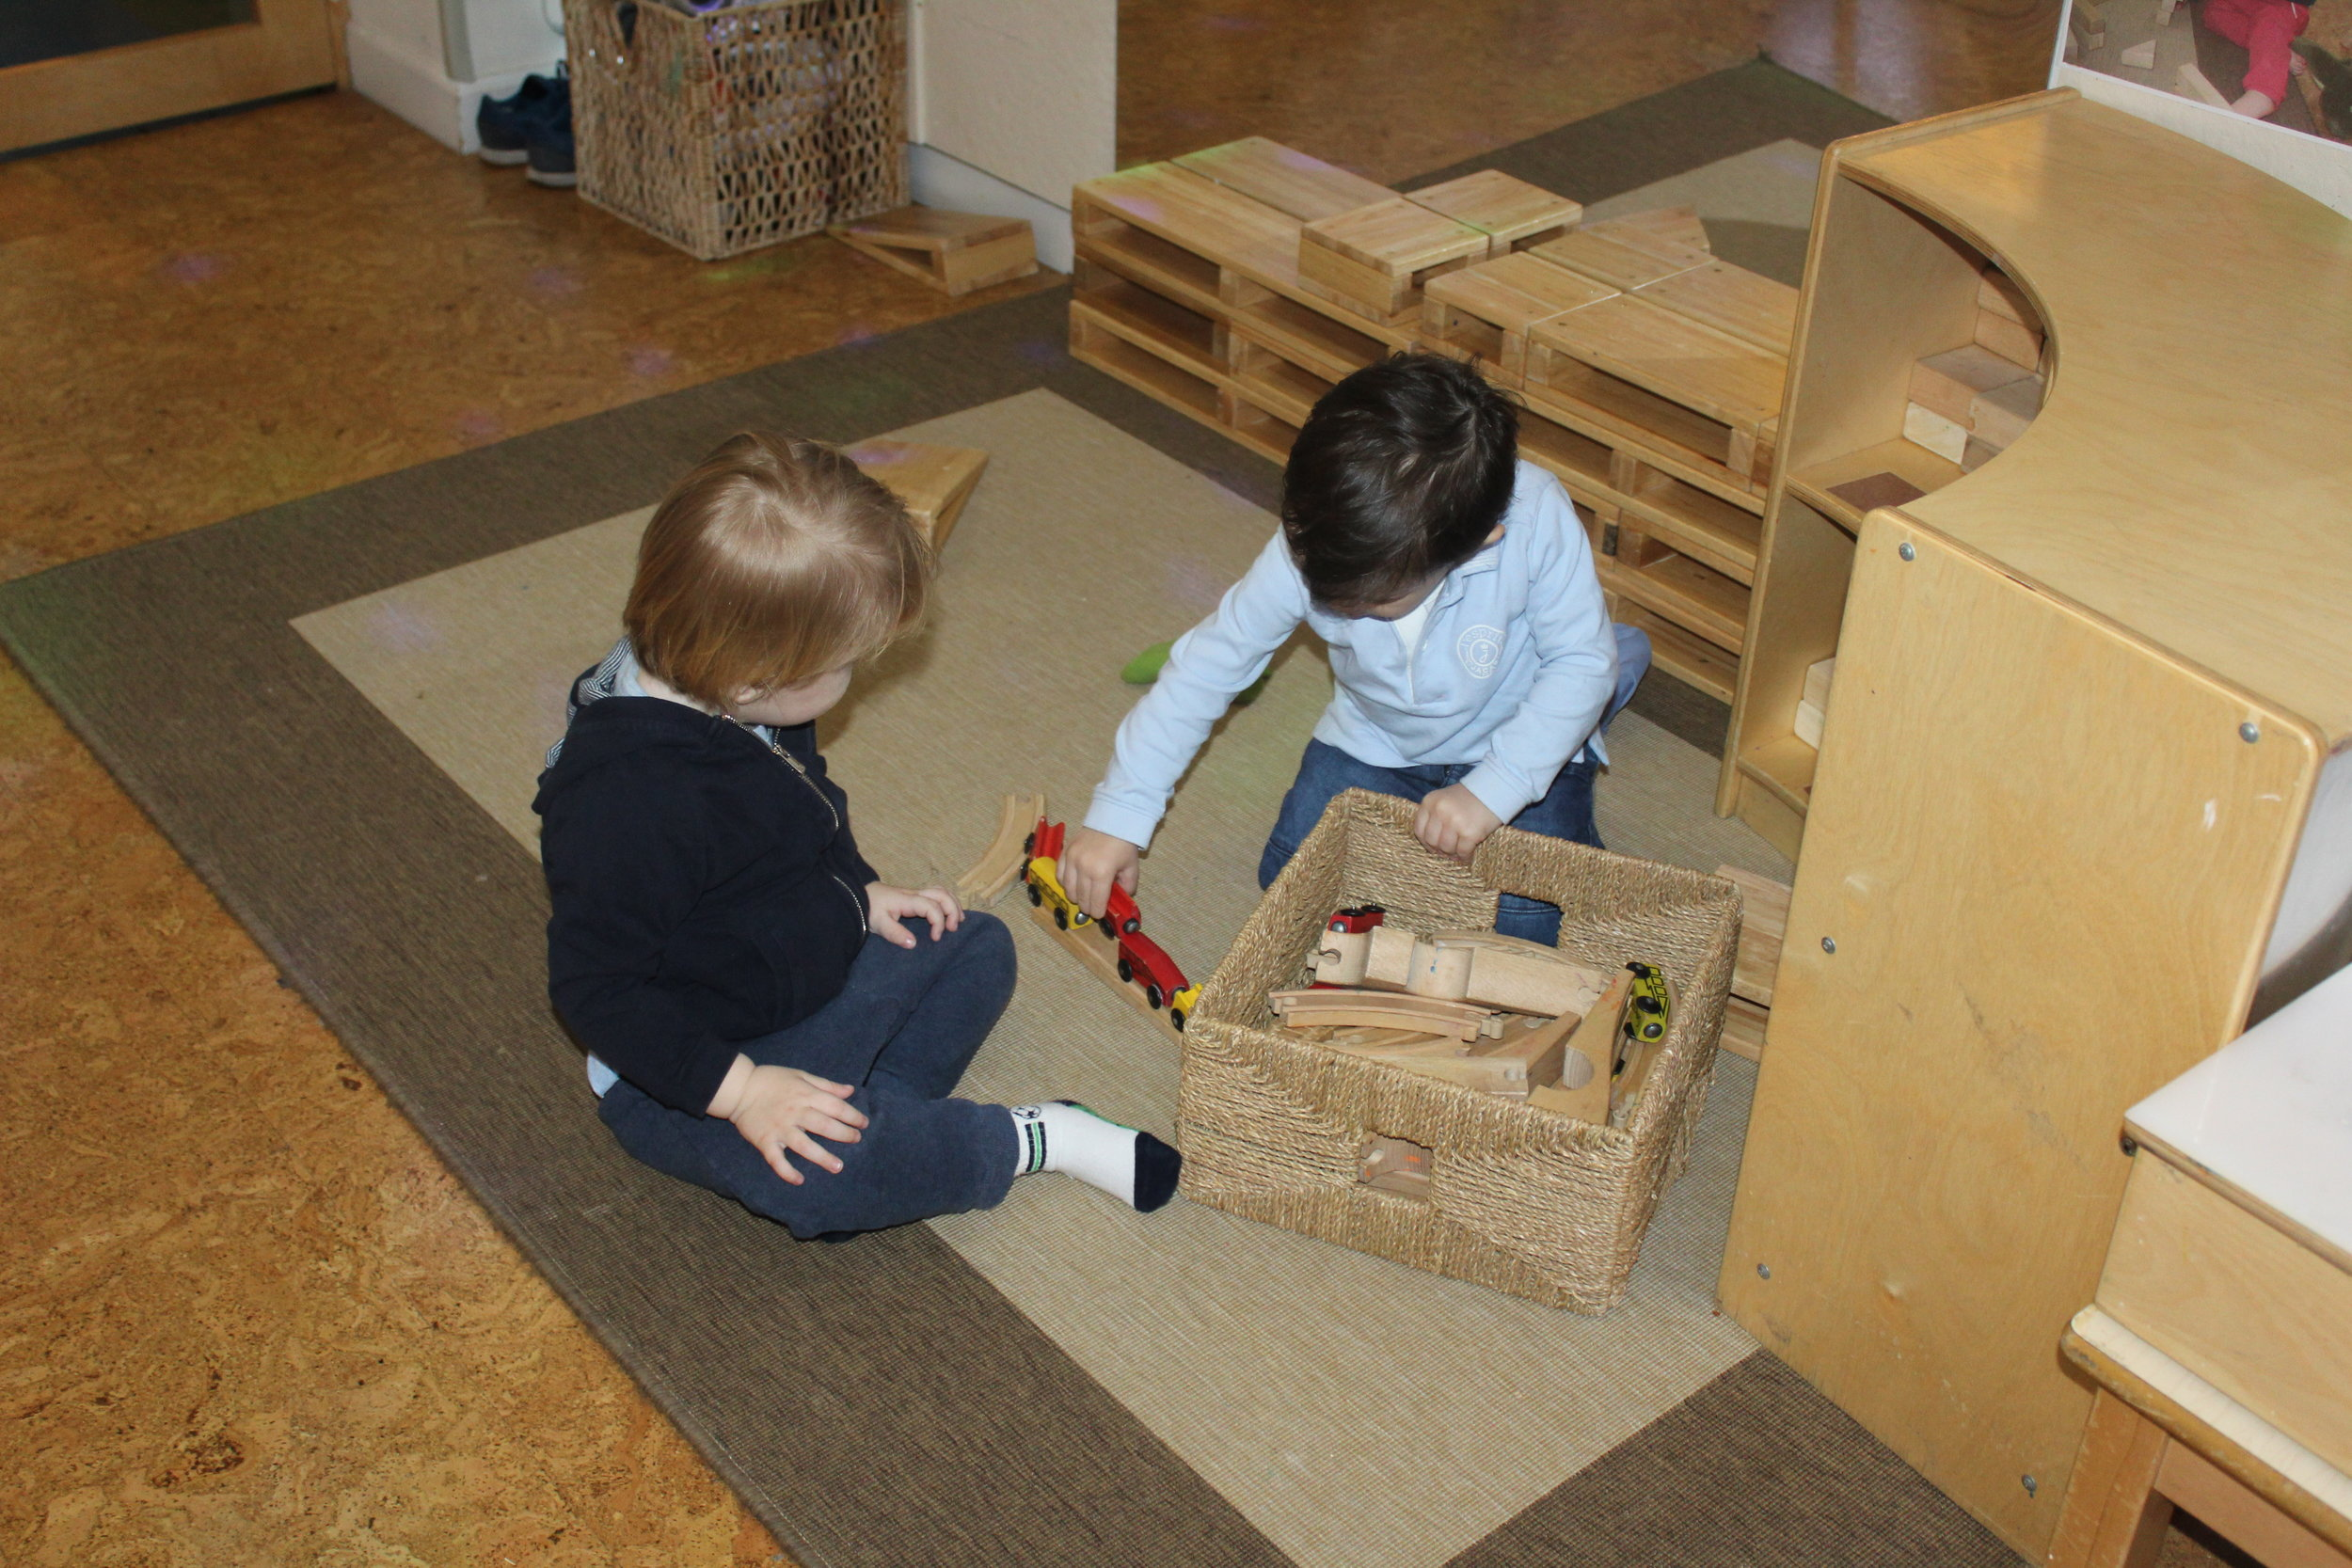 Children are learning to take turns, share toys and engage in play.